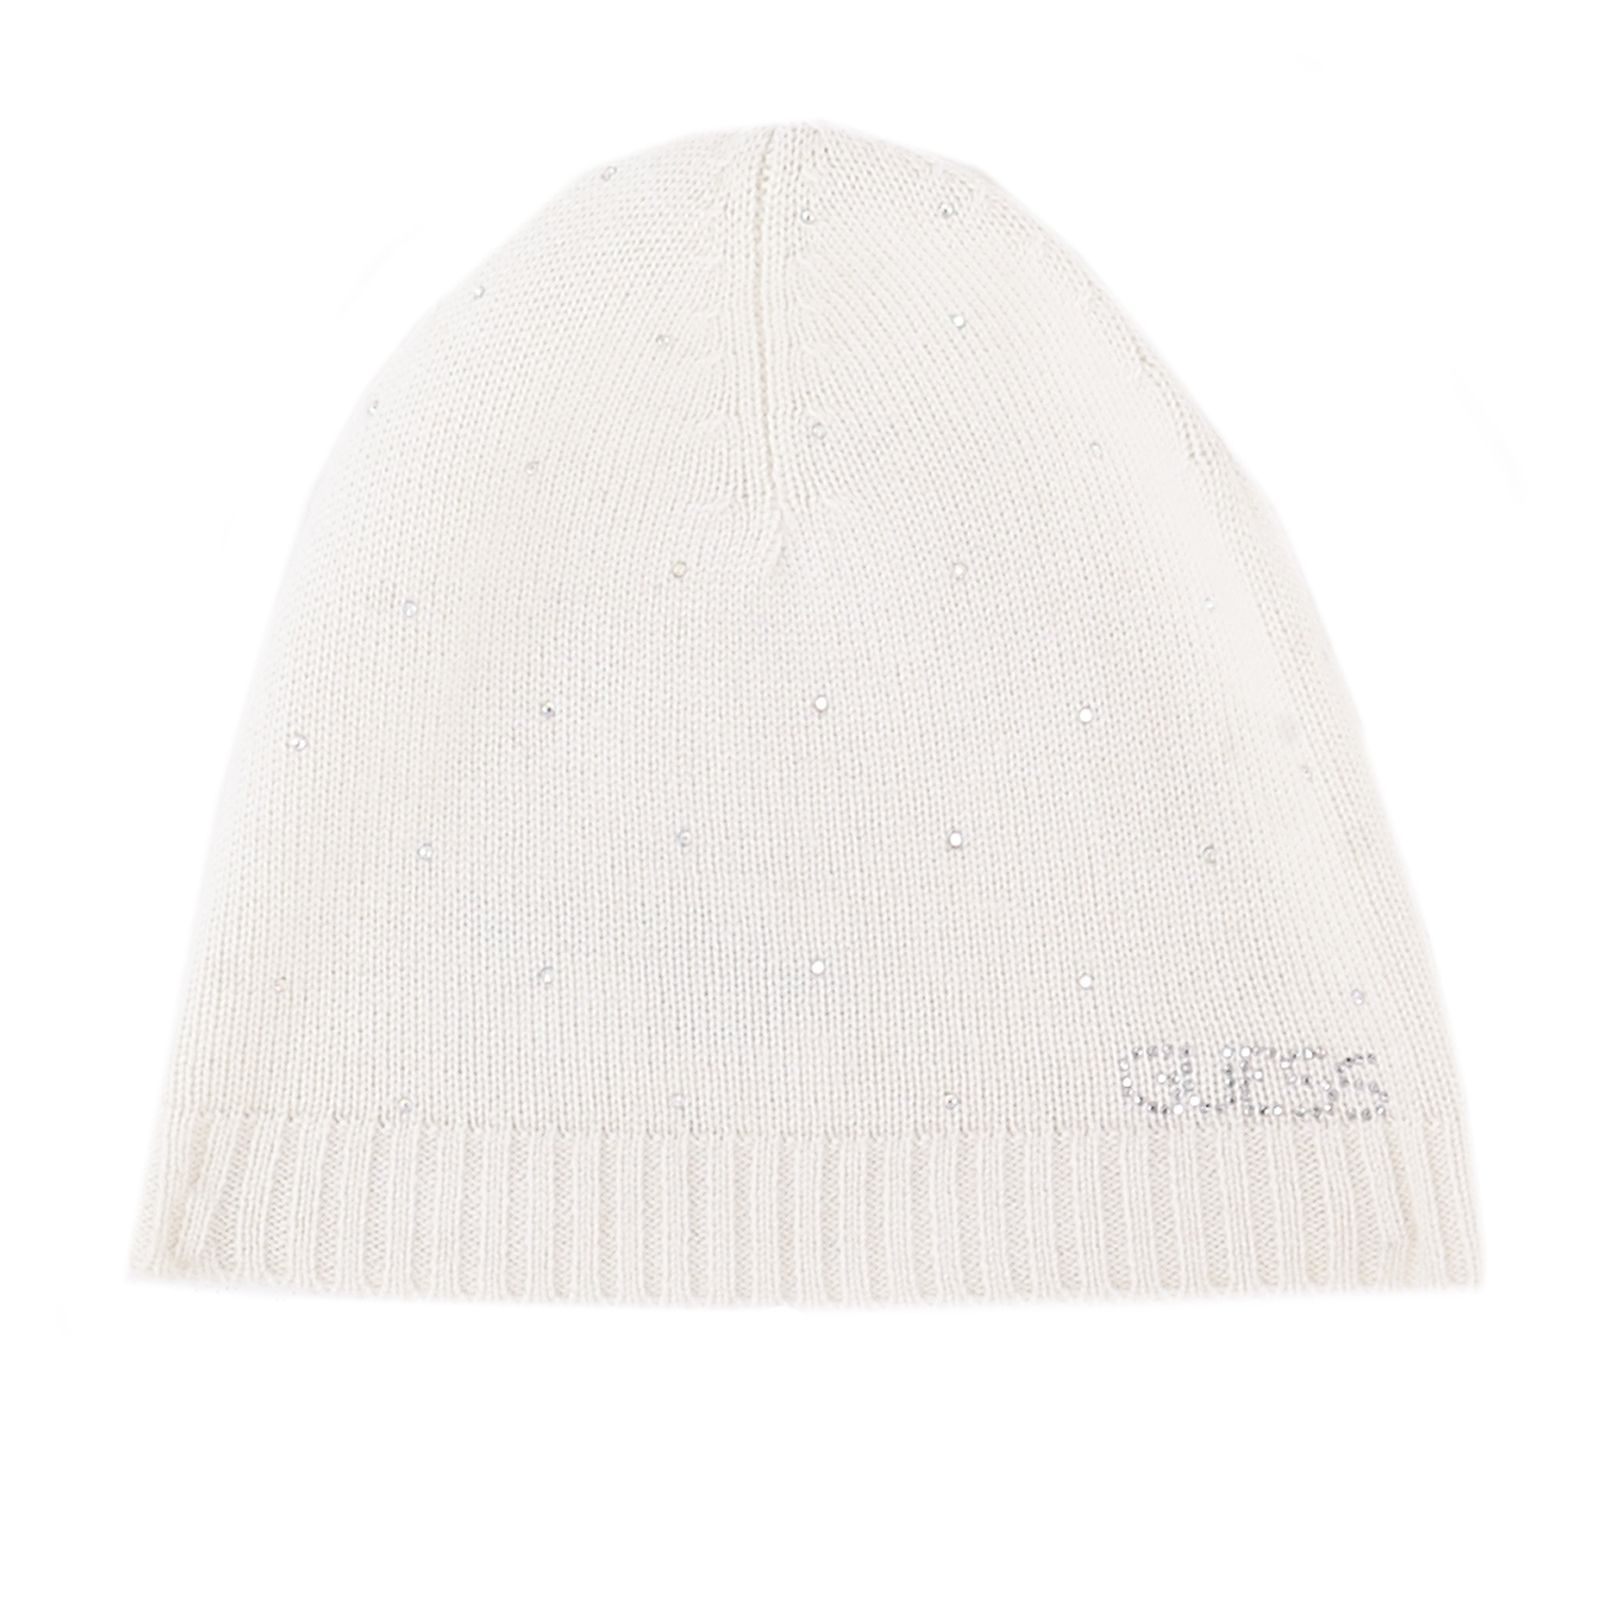 Guess :  Bonnet blanc